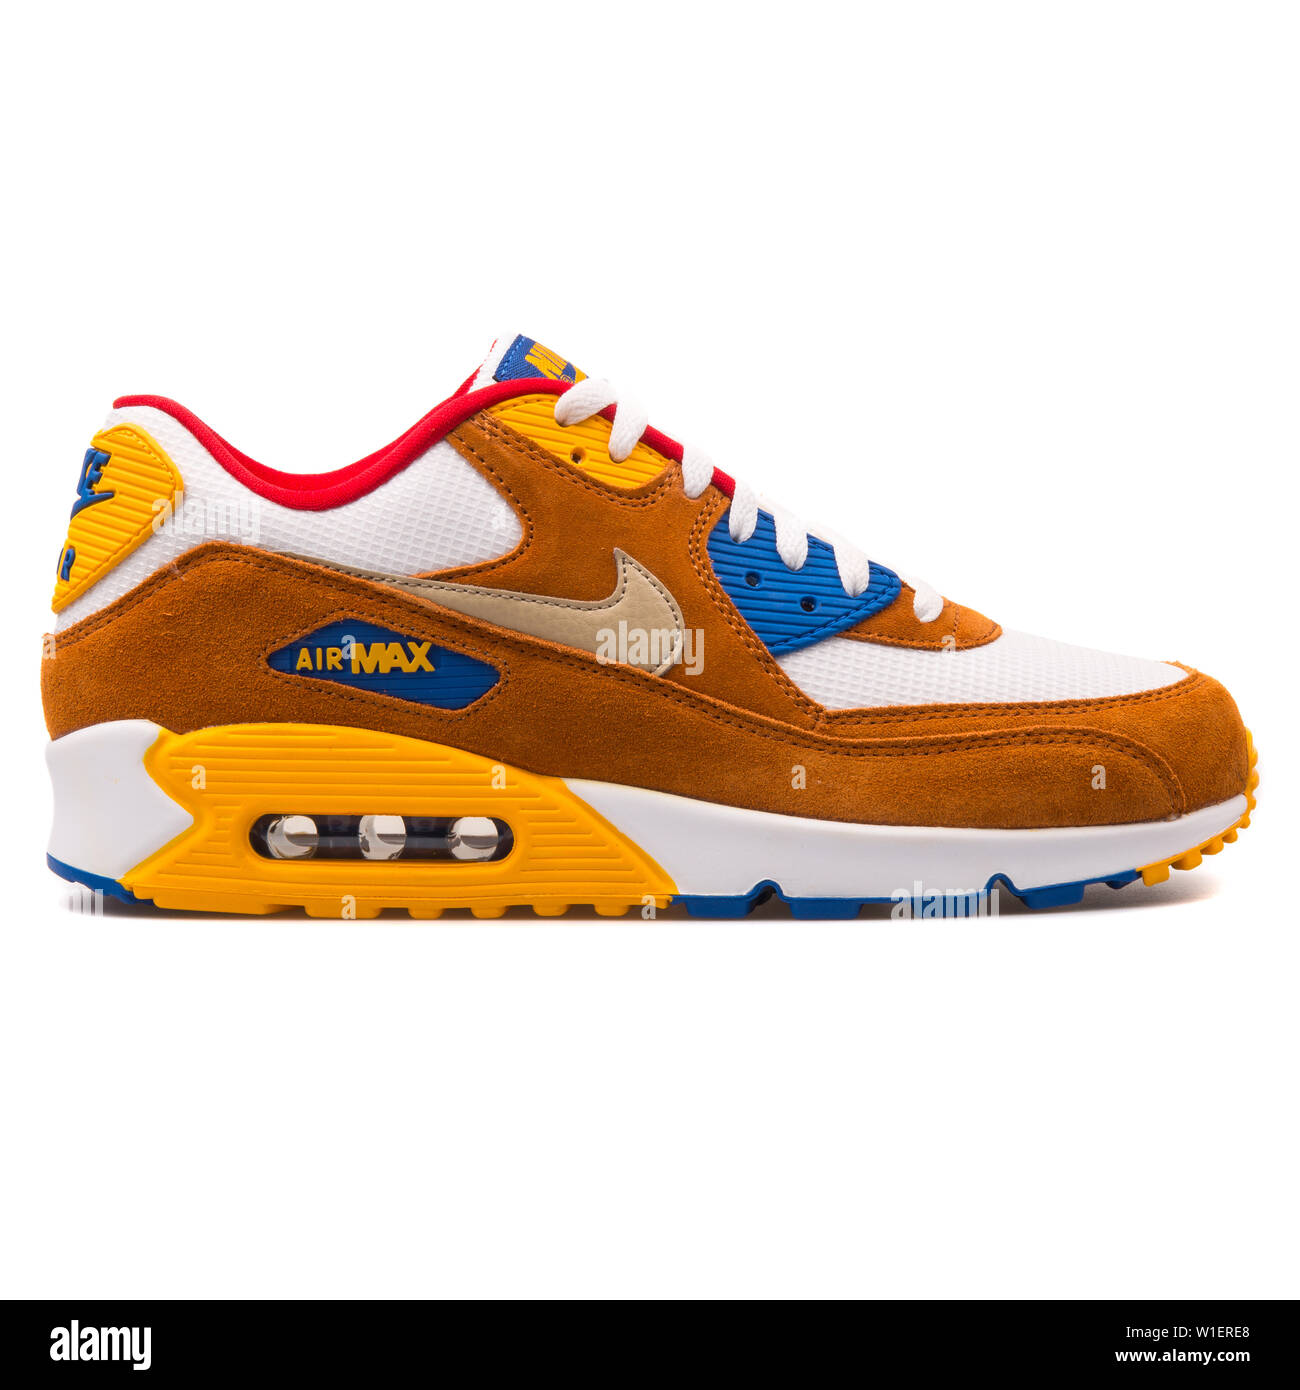 quality design 97100 d912b VIENNA, AUSTRIA - AUGUST 10, 2017: Nike Air Max 90 Premium ...